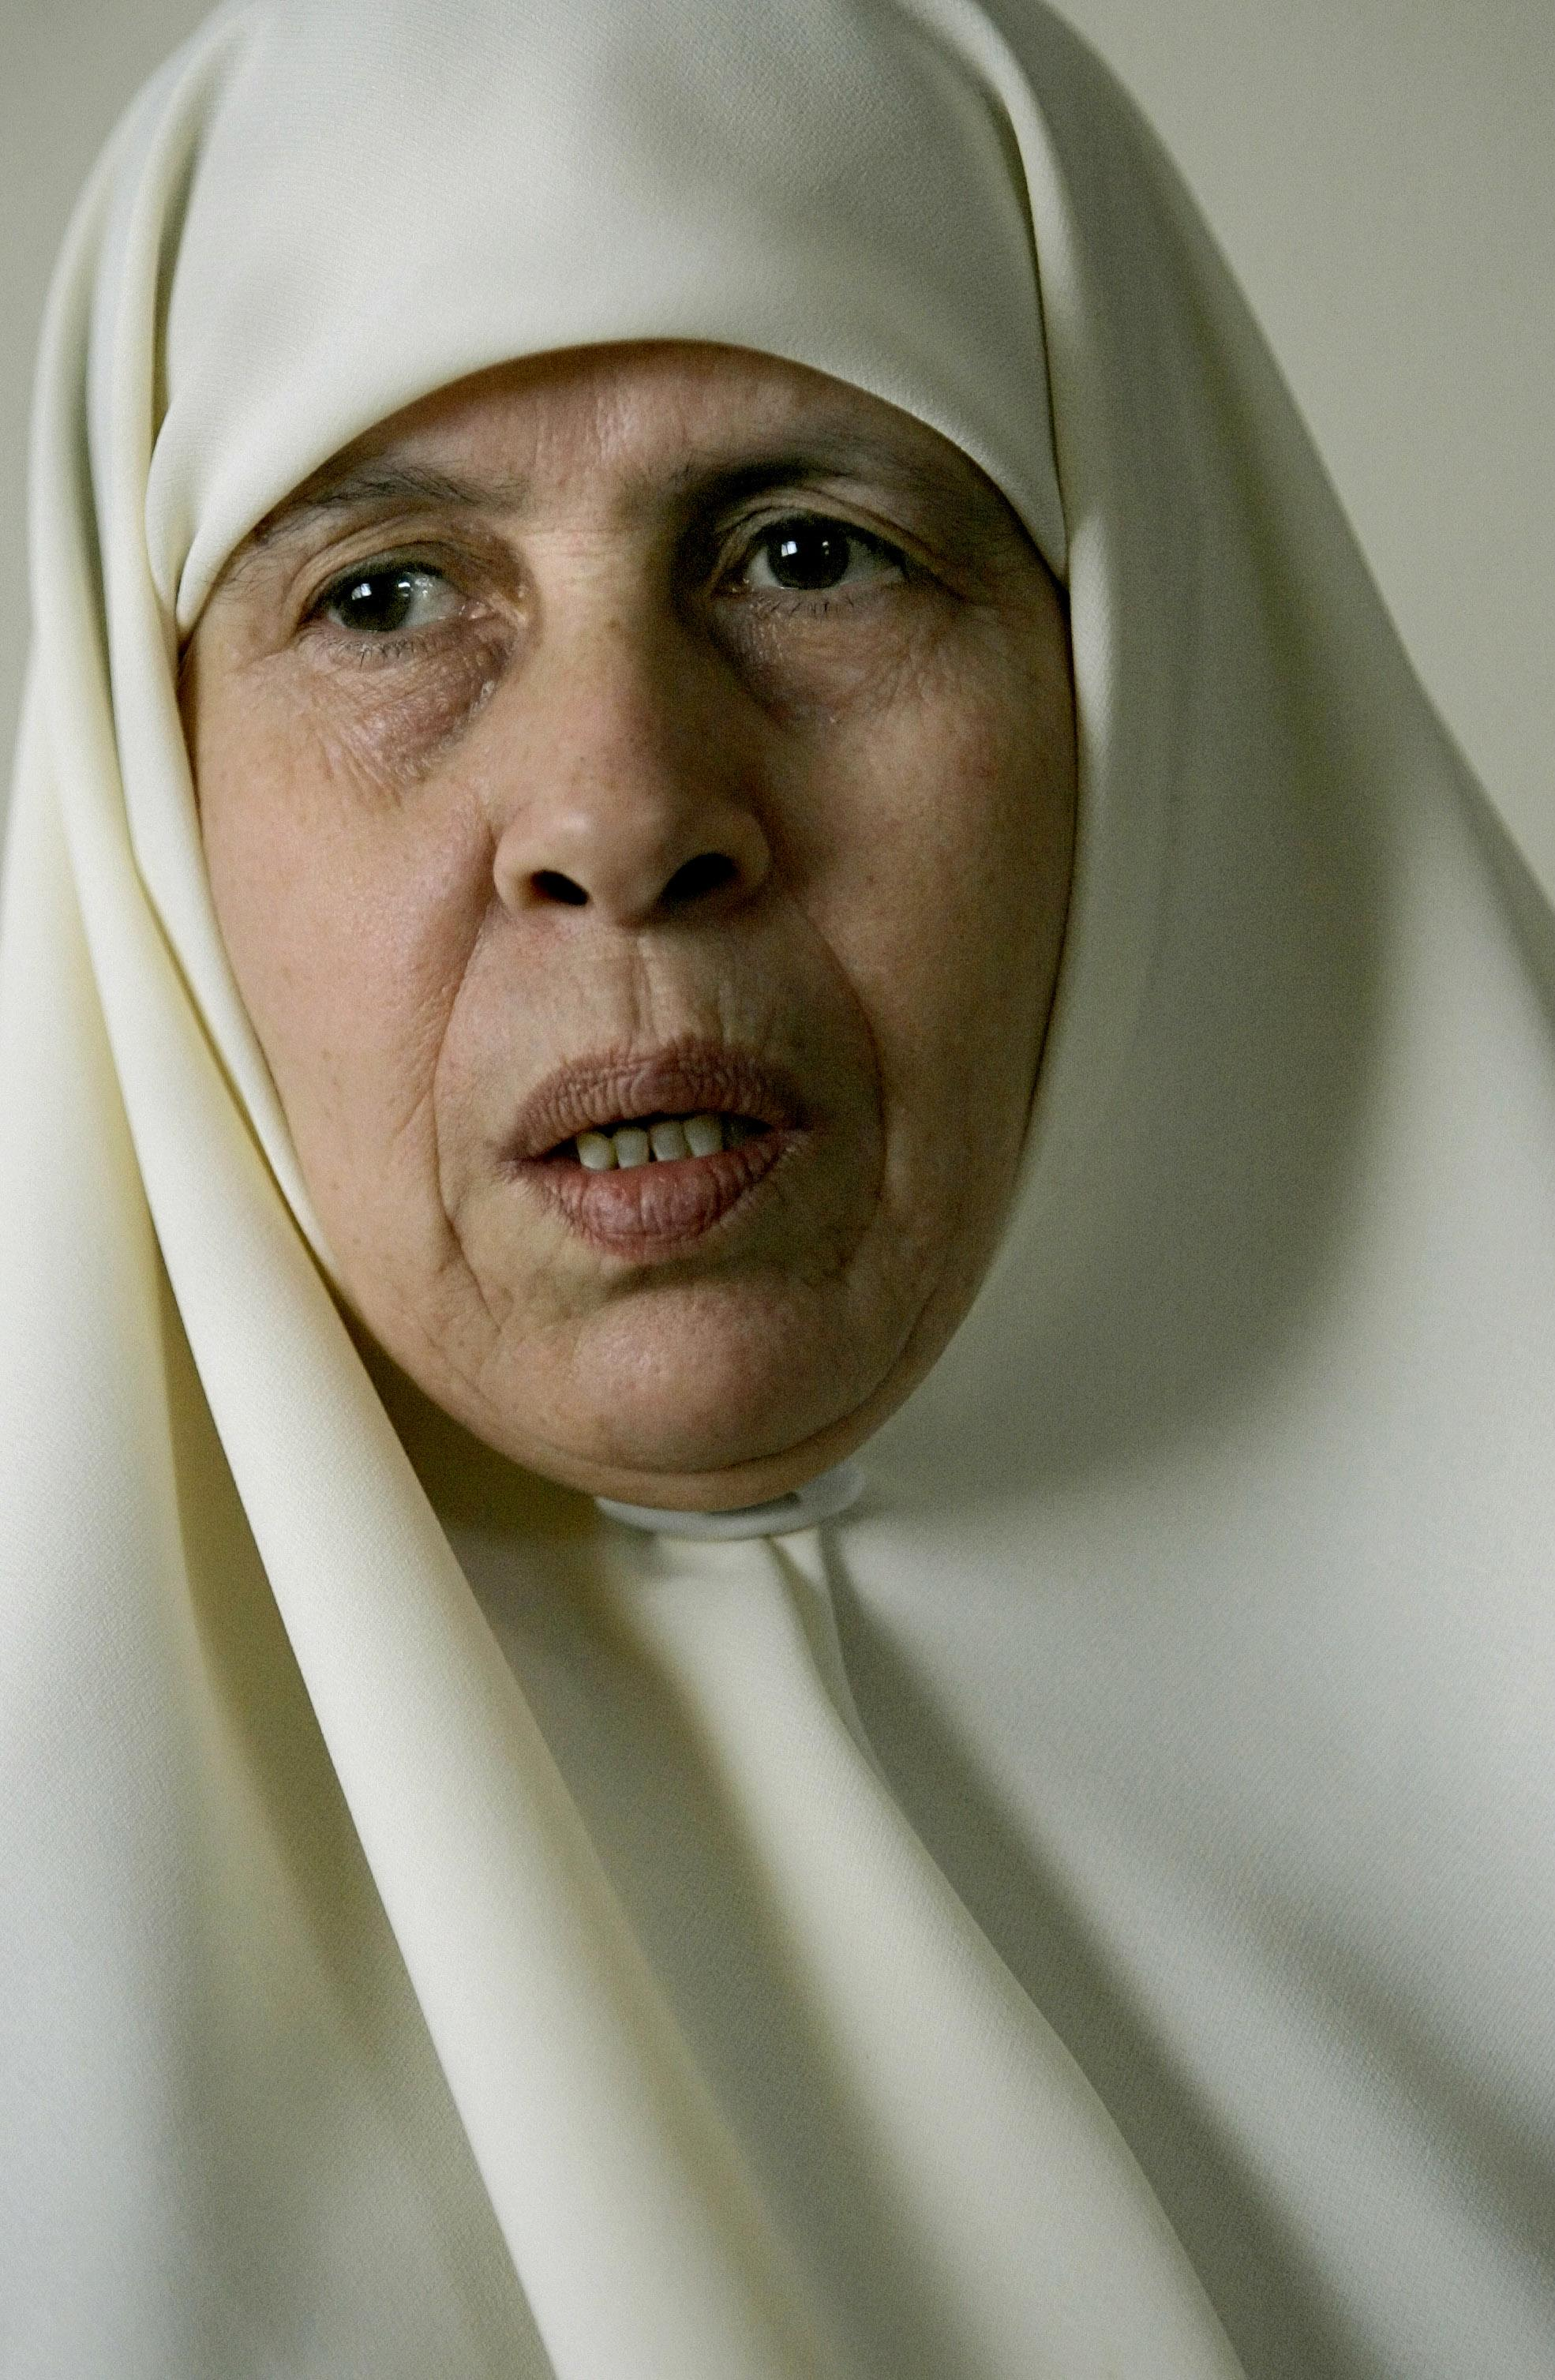 """FILE -- In this Thursday, Feb. 16, 2006 file photo, Mariam Farhat is seen in her house in Gaza City. Farhat, 64, died in Gaza City, Sunday, March 17, 2013. Farhat, who known as the """"mother of martyrs,"""" lost three of her six sons, all three Hamas militants, in fighting with Israel. (AP Photo/Alexander Zemlianichenko, File)"""